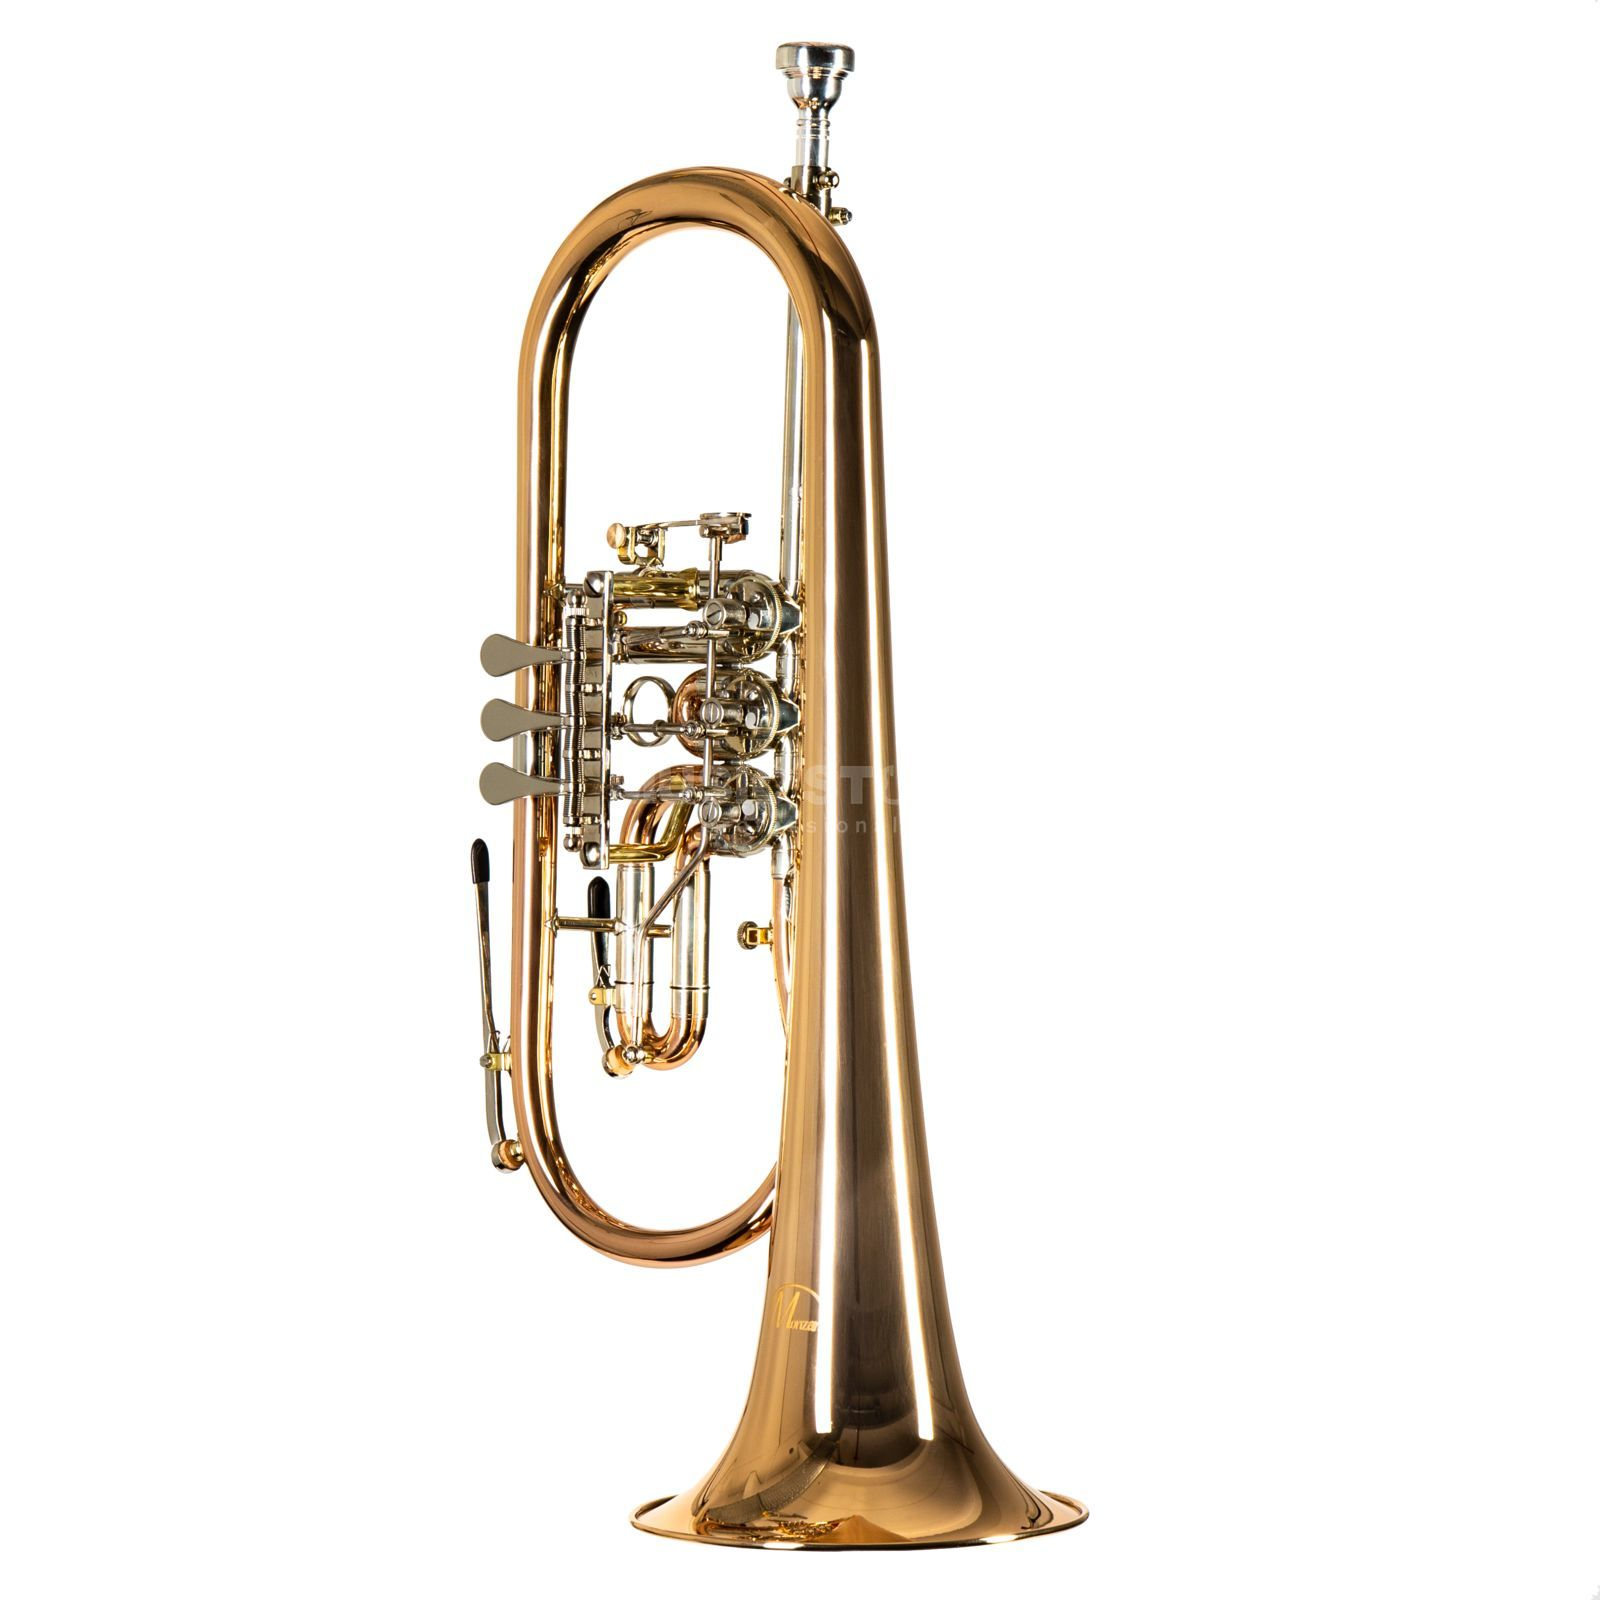 Monzani MZFH-1050L Bb-Flugel Horn Yellow Brass Product Image